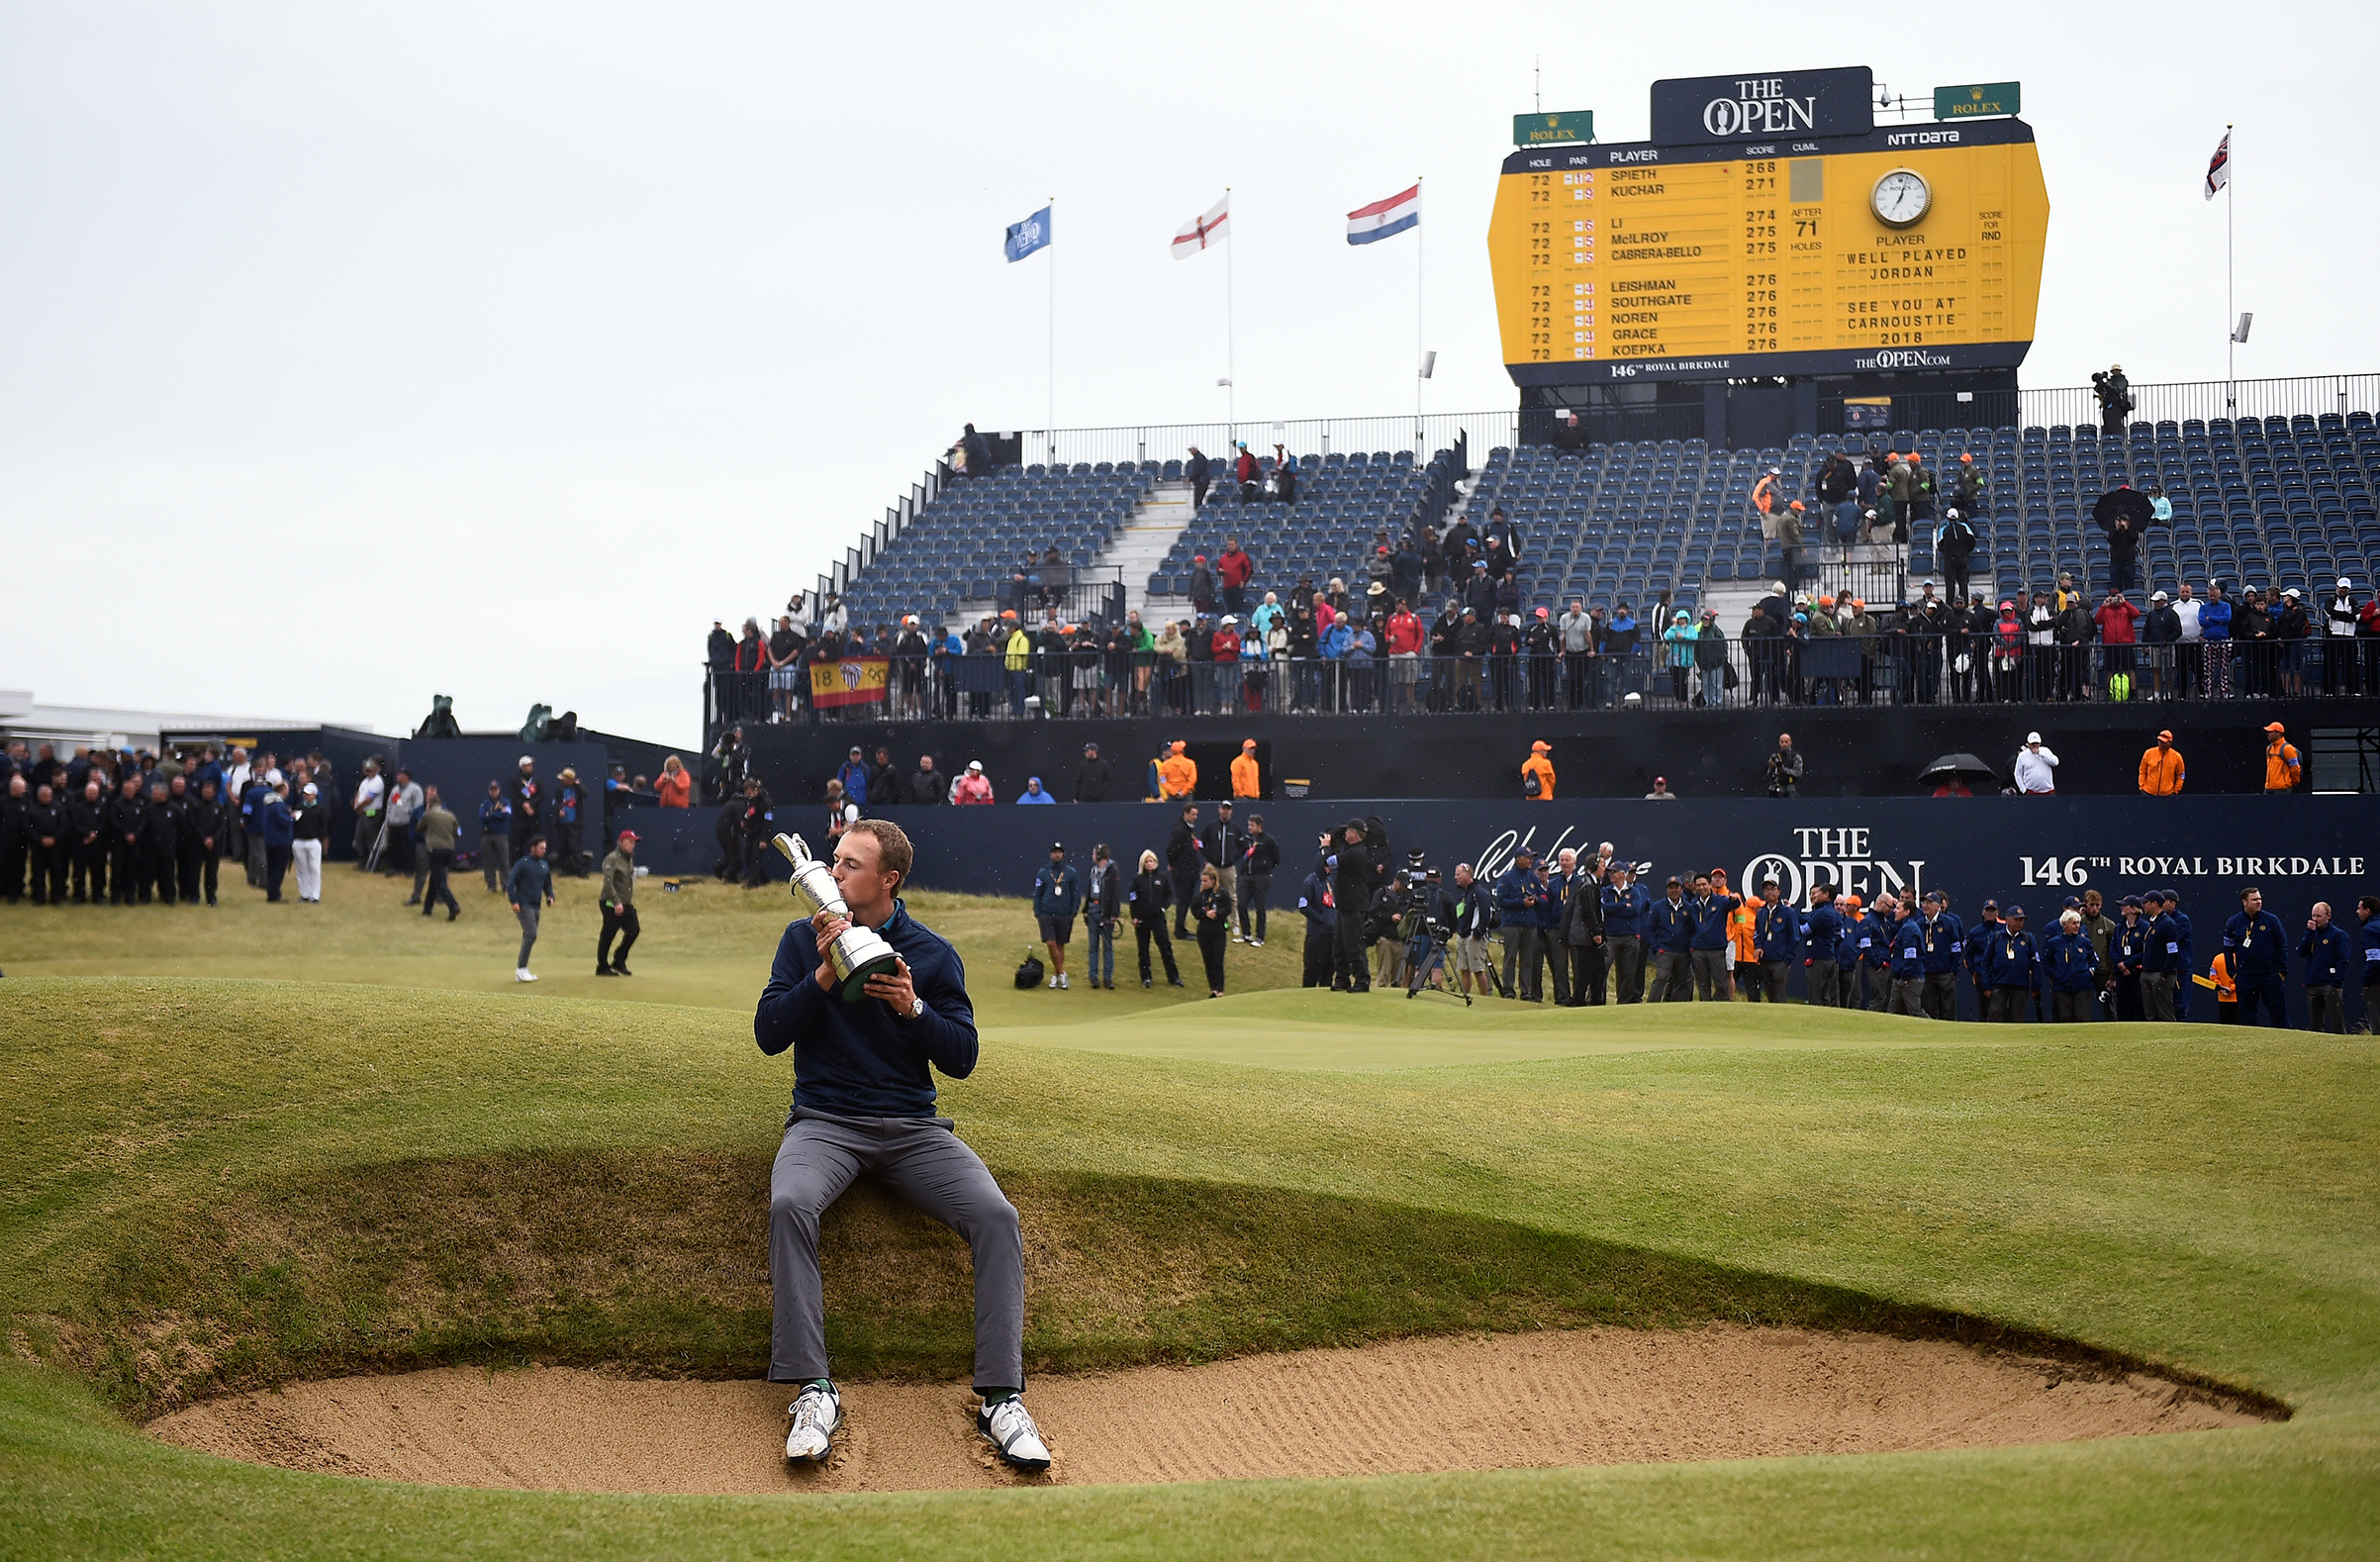 Jordan Spieth celebrates with The Claret Jug after winning The 146th Open Championship in Southport, Britain, on July 23, 2017.